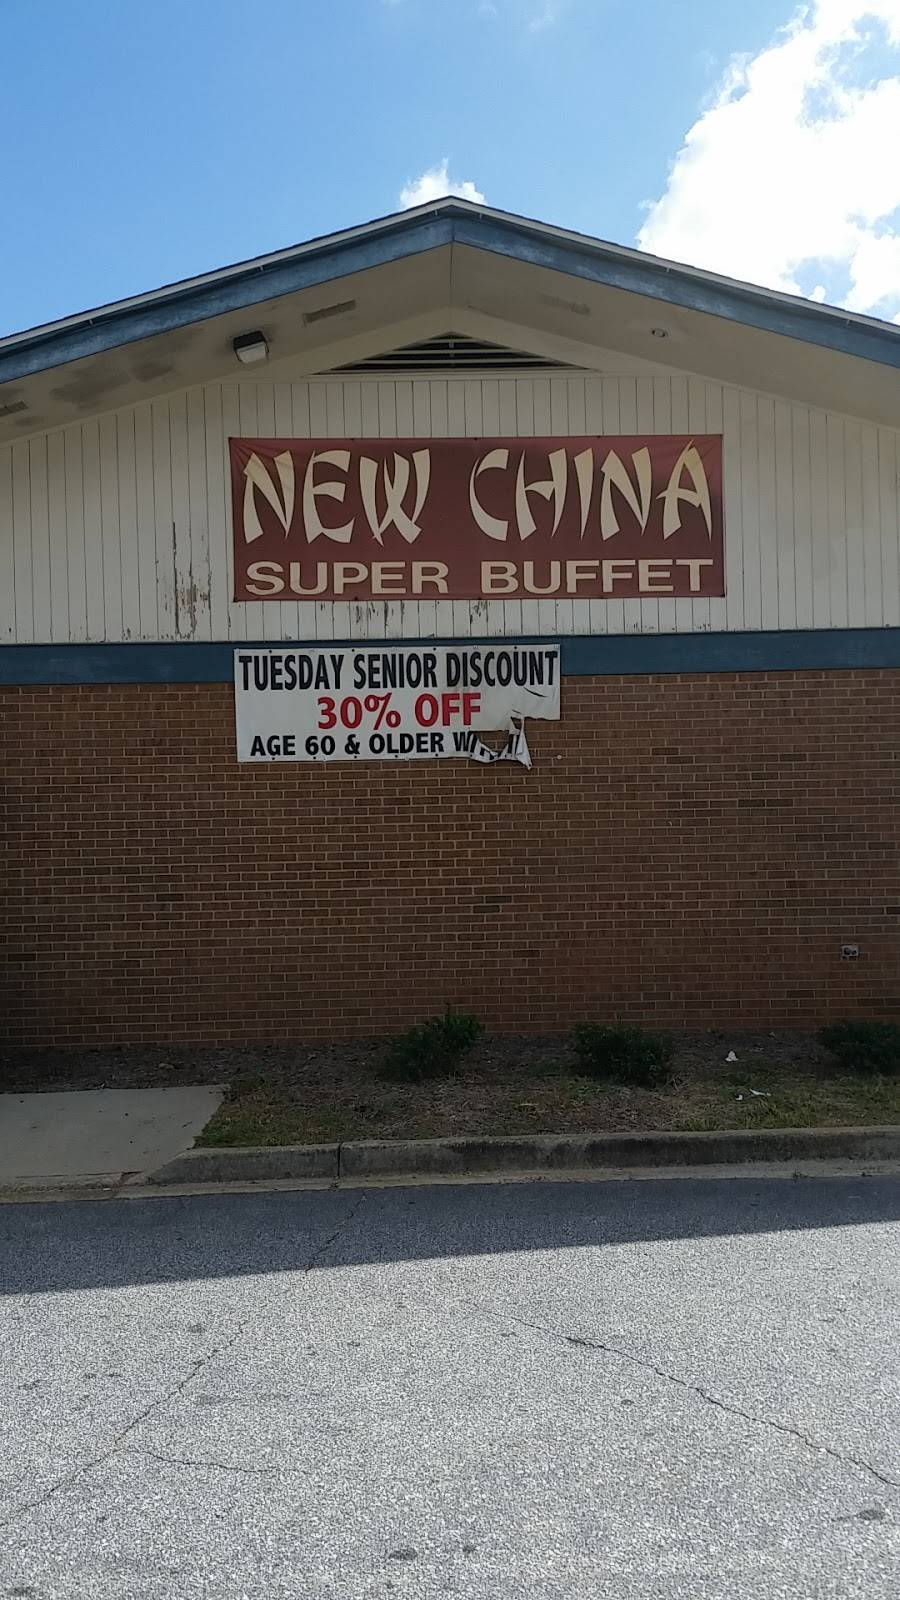 New China | restaurant | 614 N Main St, Greer, SC 29650, USA | 8648778885 OR +1 864-877-8885